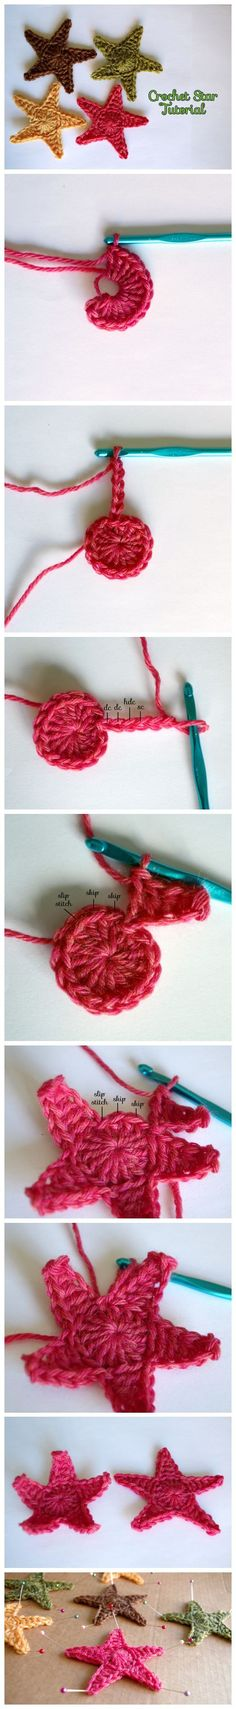 How to make a crochet star | Looks like a sea star @Angie West will you teach me how to make these?